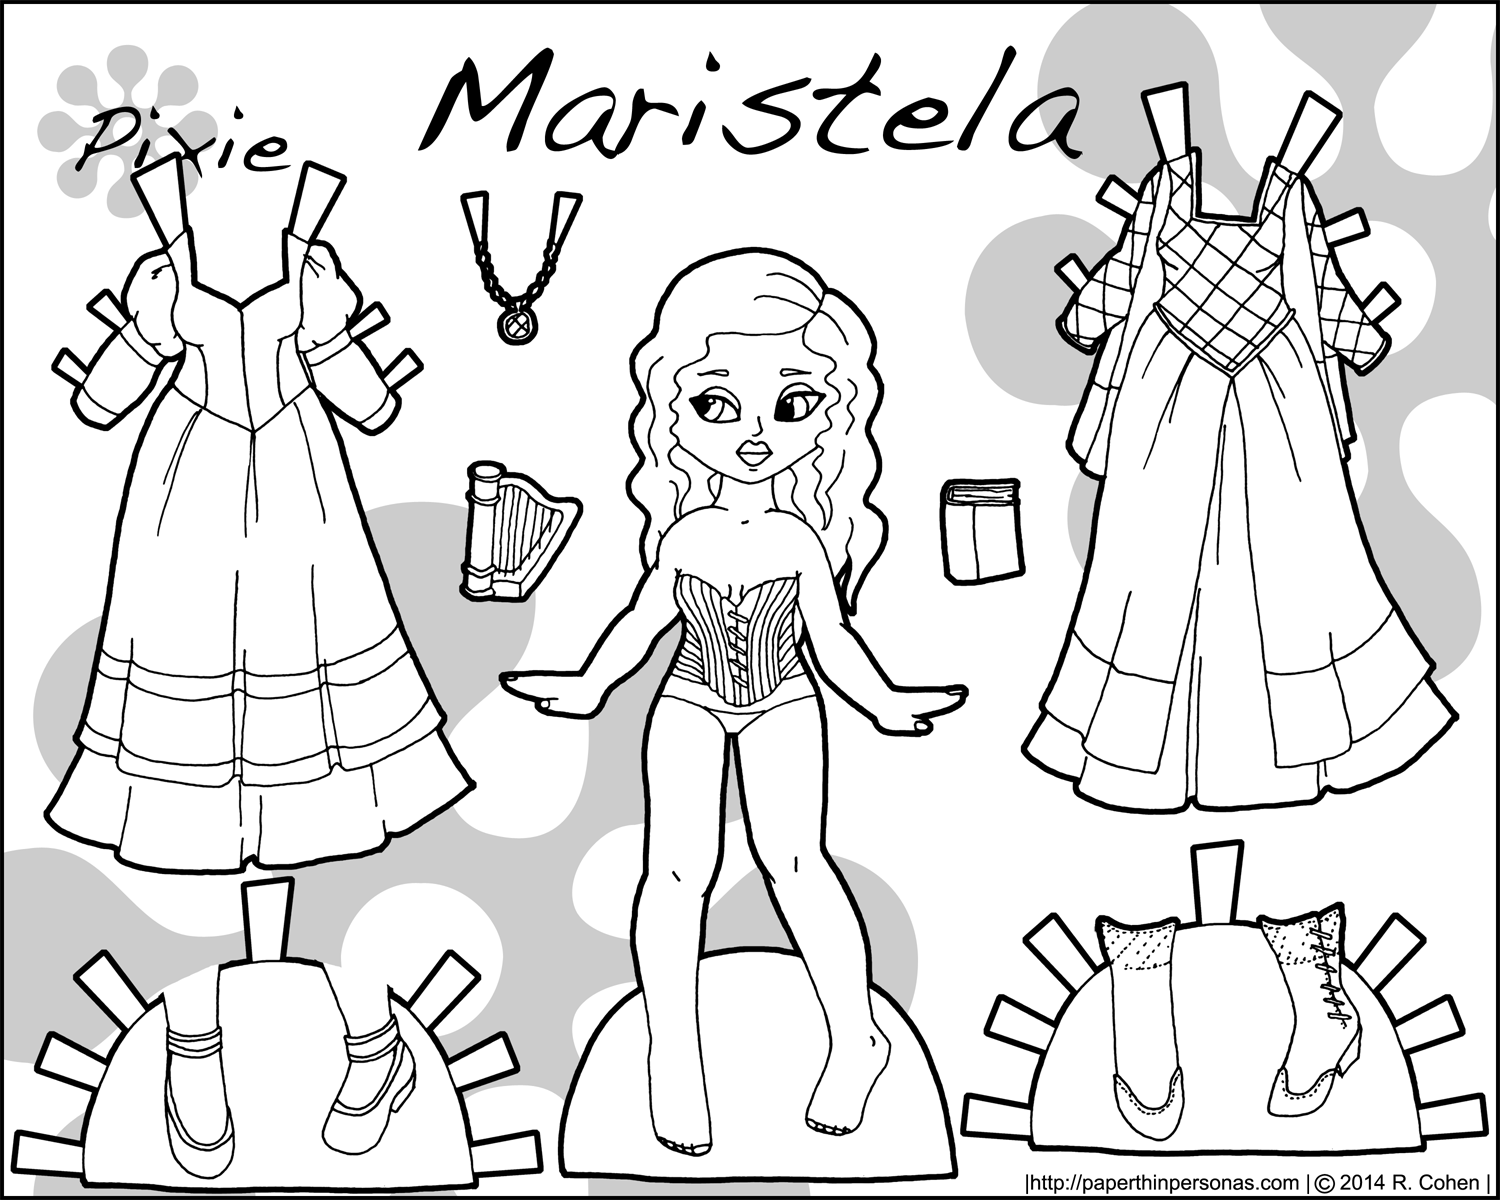 dress up paper doll a purple princess paper doll named maristela paper thin paper dress up doll